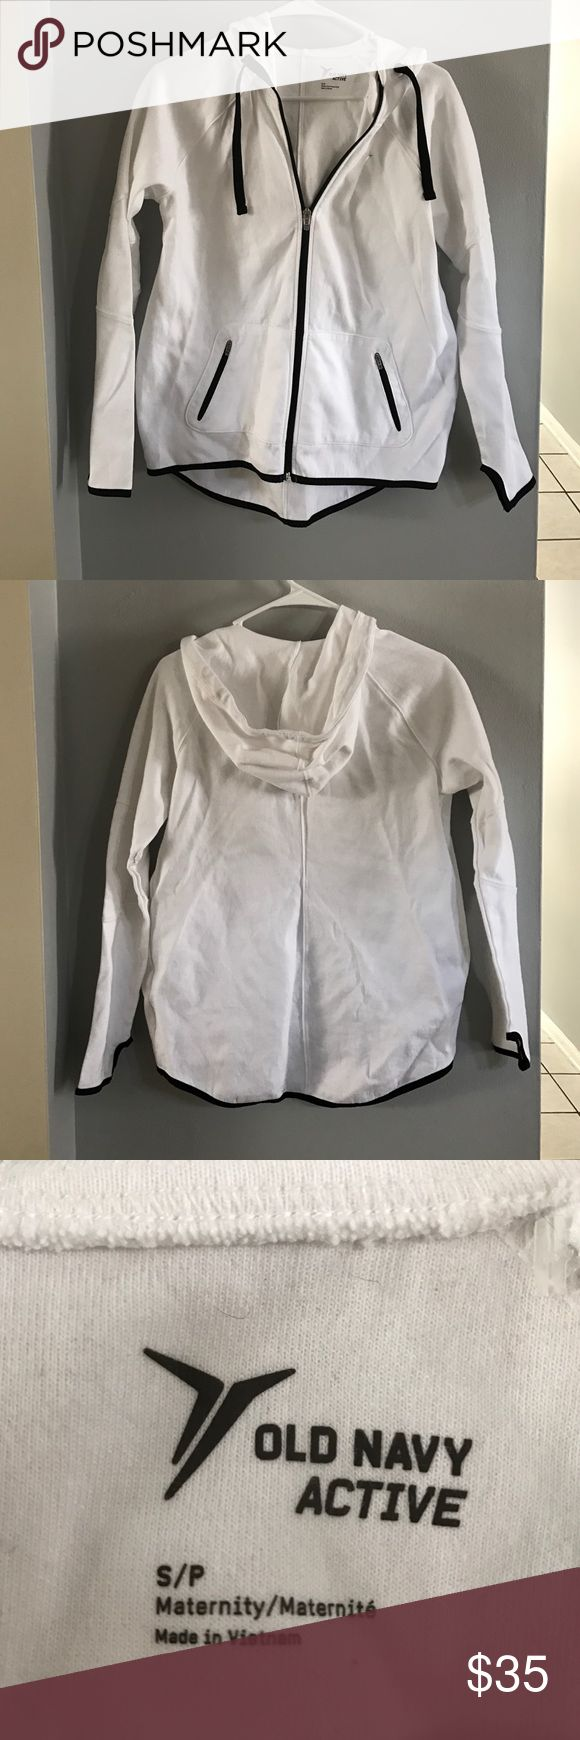 Old Navy Maternity Zip Up Brand new - never worn - white with black trim maternity zip up - smoke free, dog friendly home Old Navy Tops Sweatshirts & Hoodies